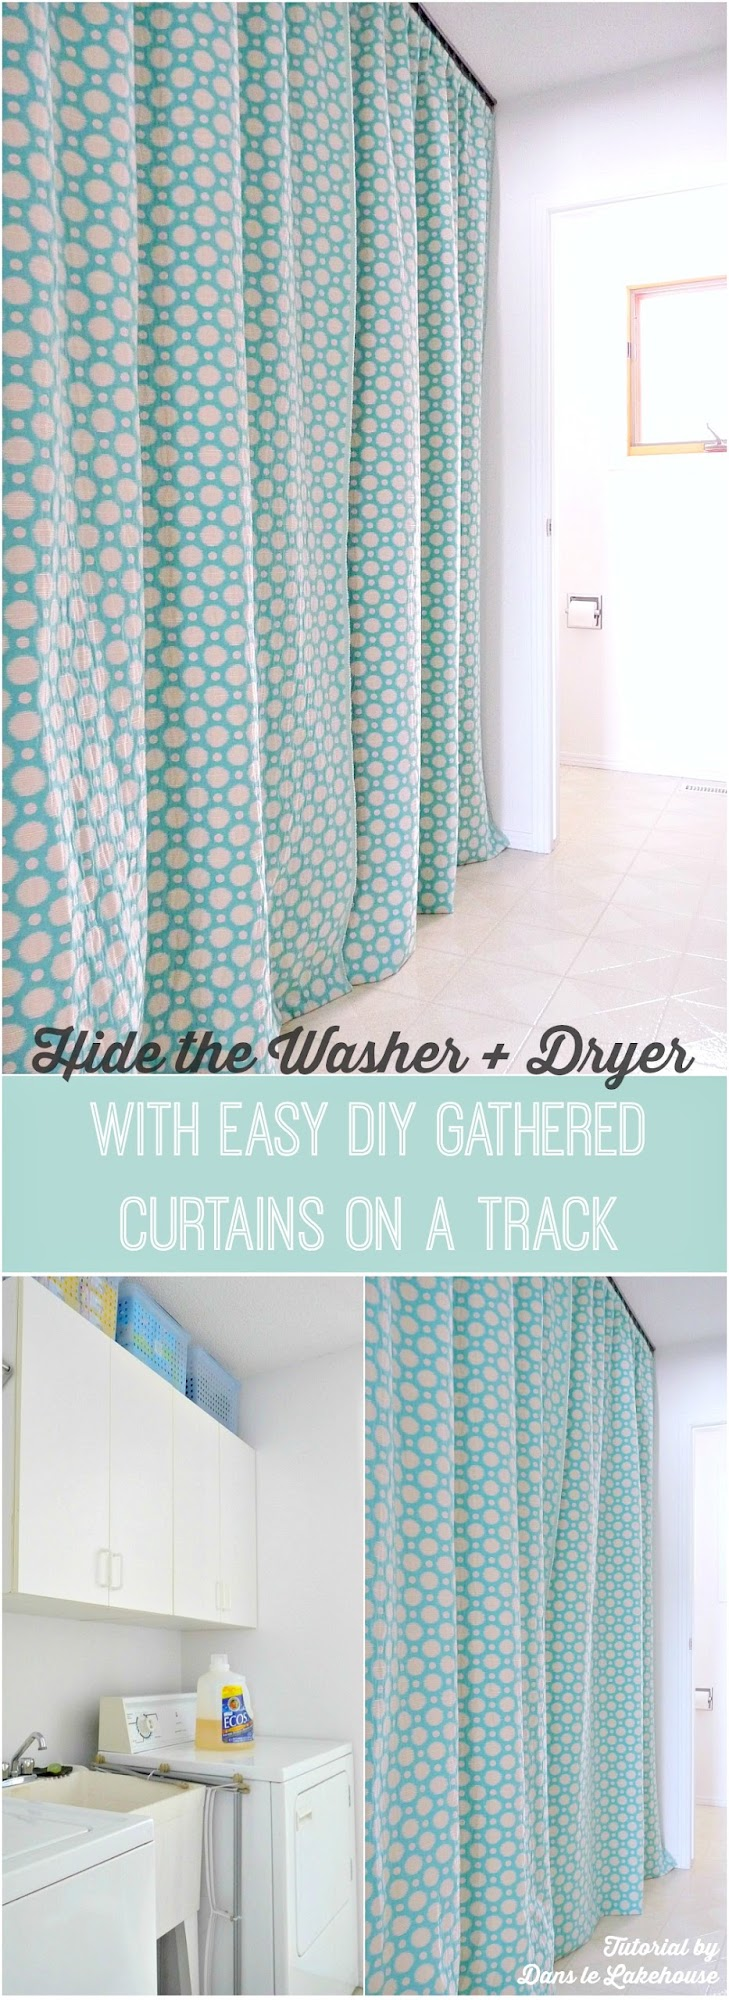 How to hide a washer and dryer with DIY drapes on a track